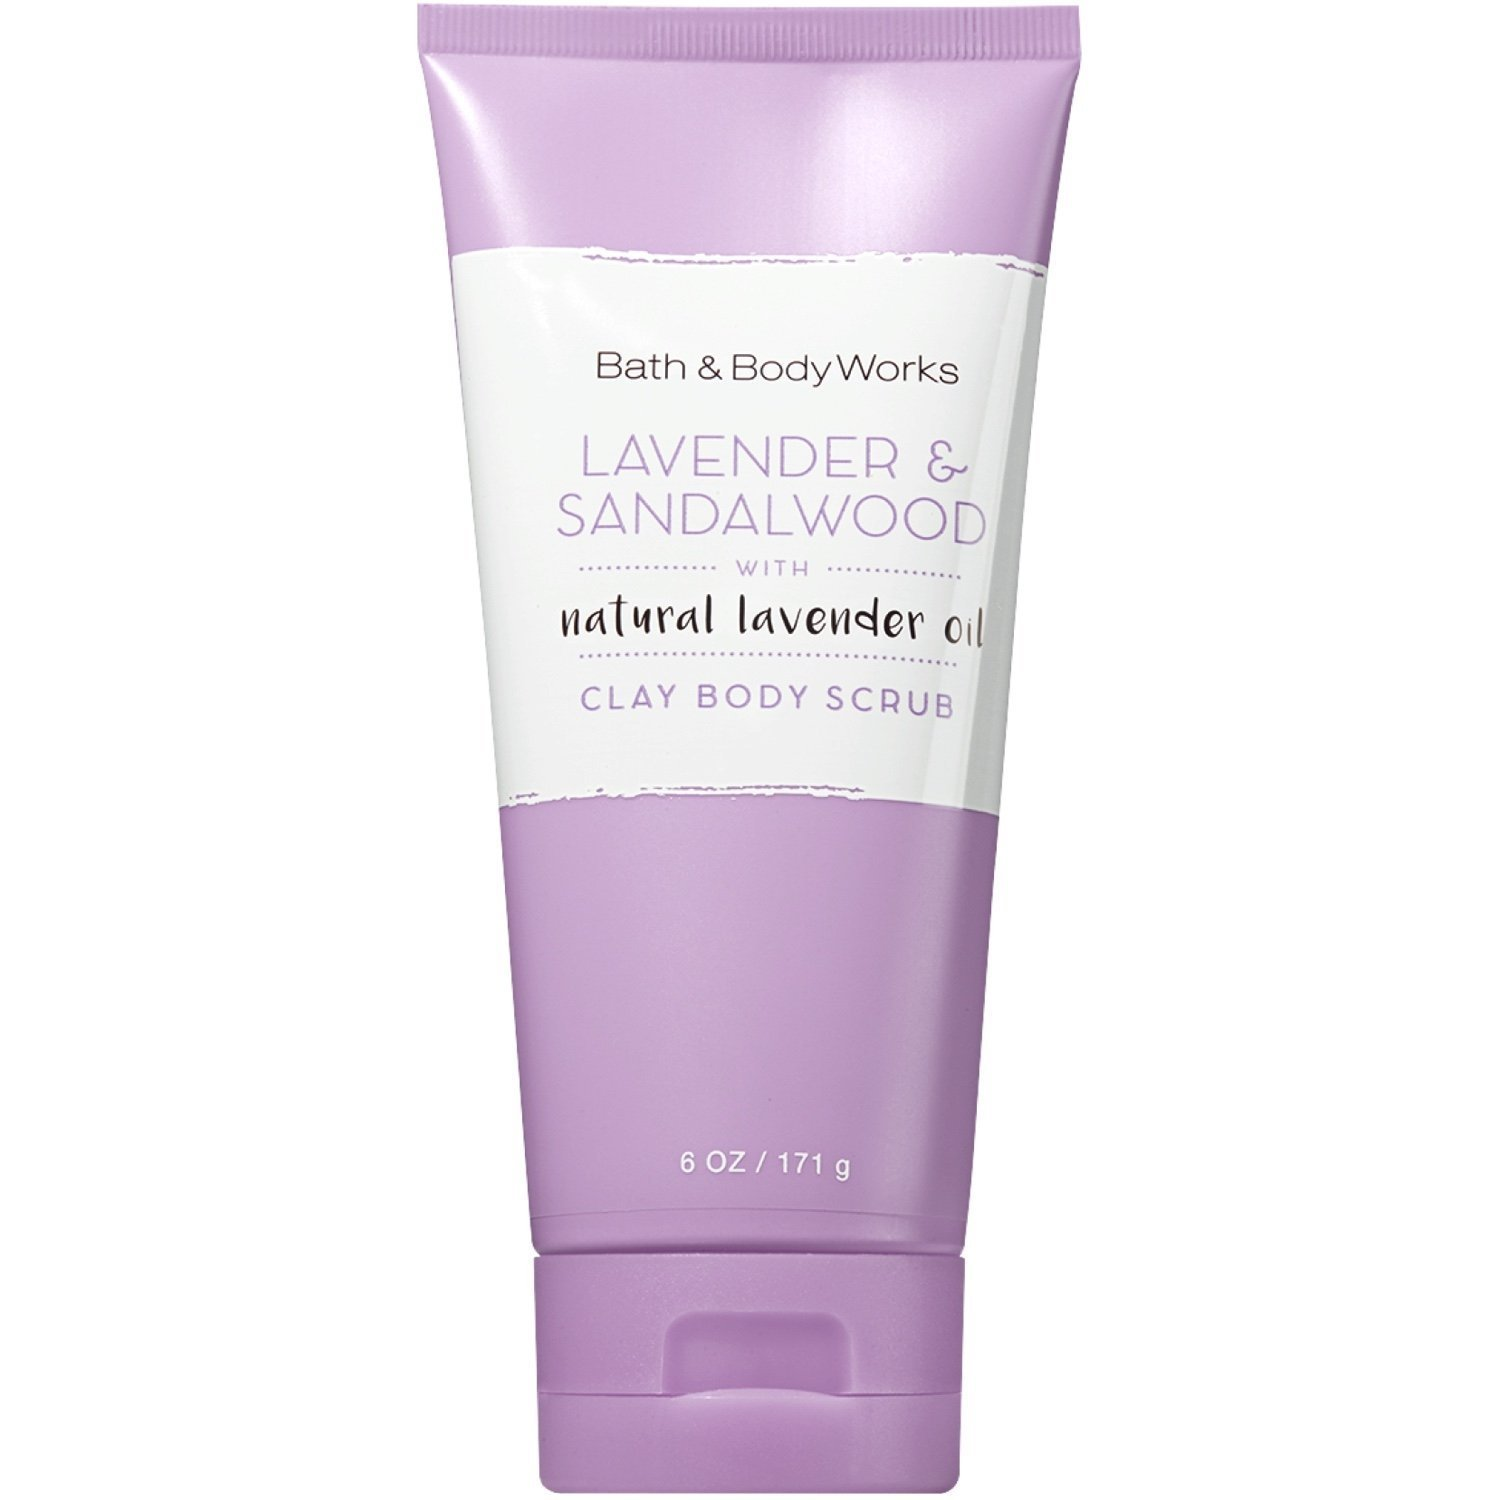 Bath and Body Works Signature Collection Clay Body Scrub with Natural Essential Oils (Lavender & Sandalwood)